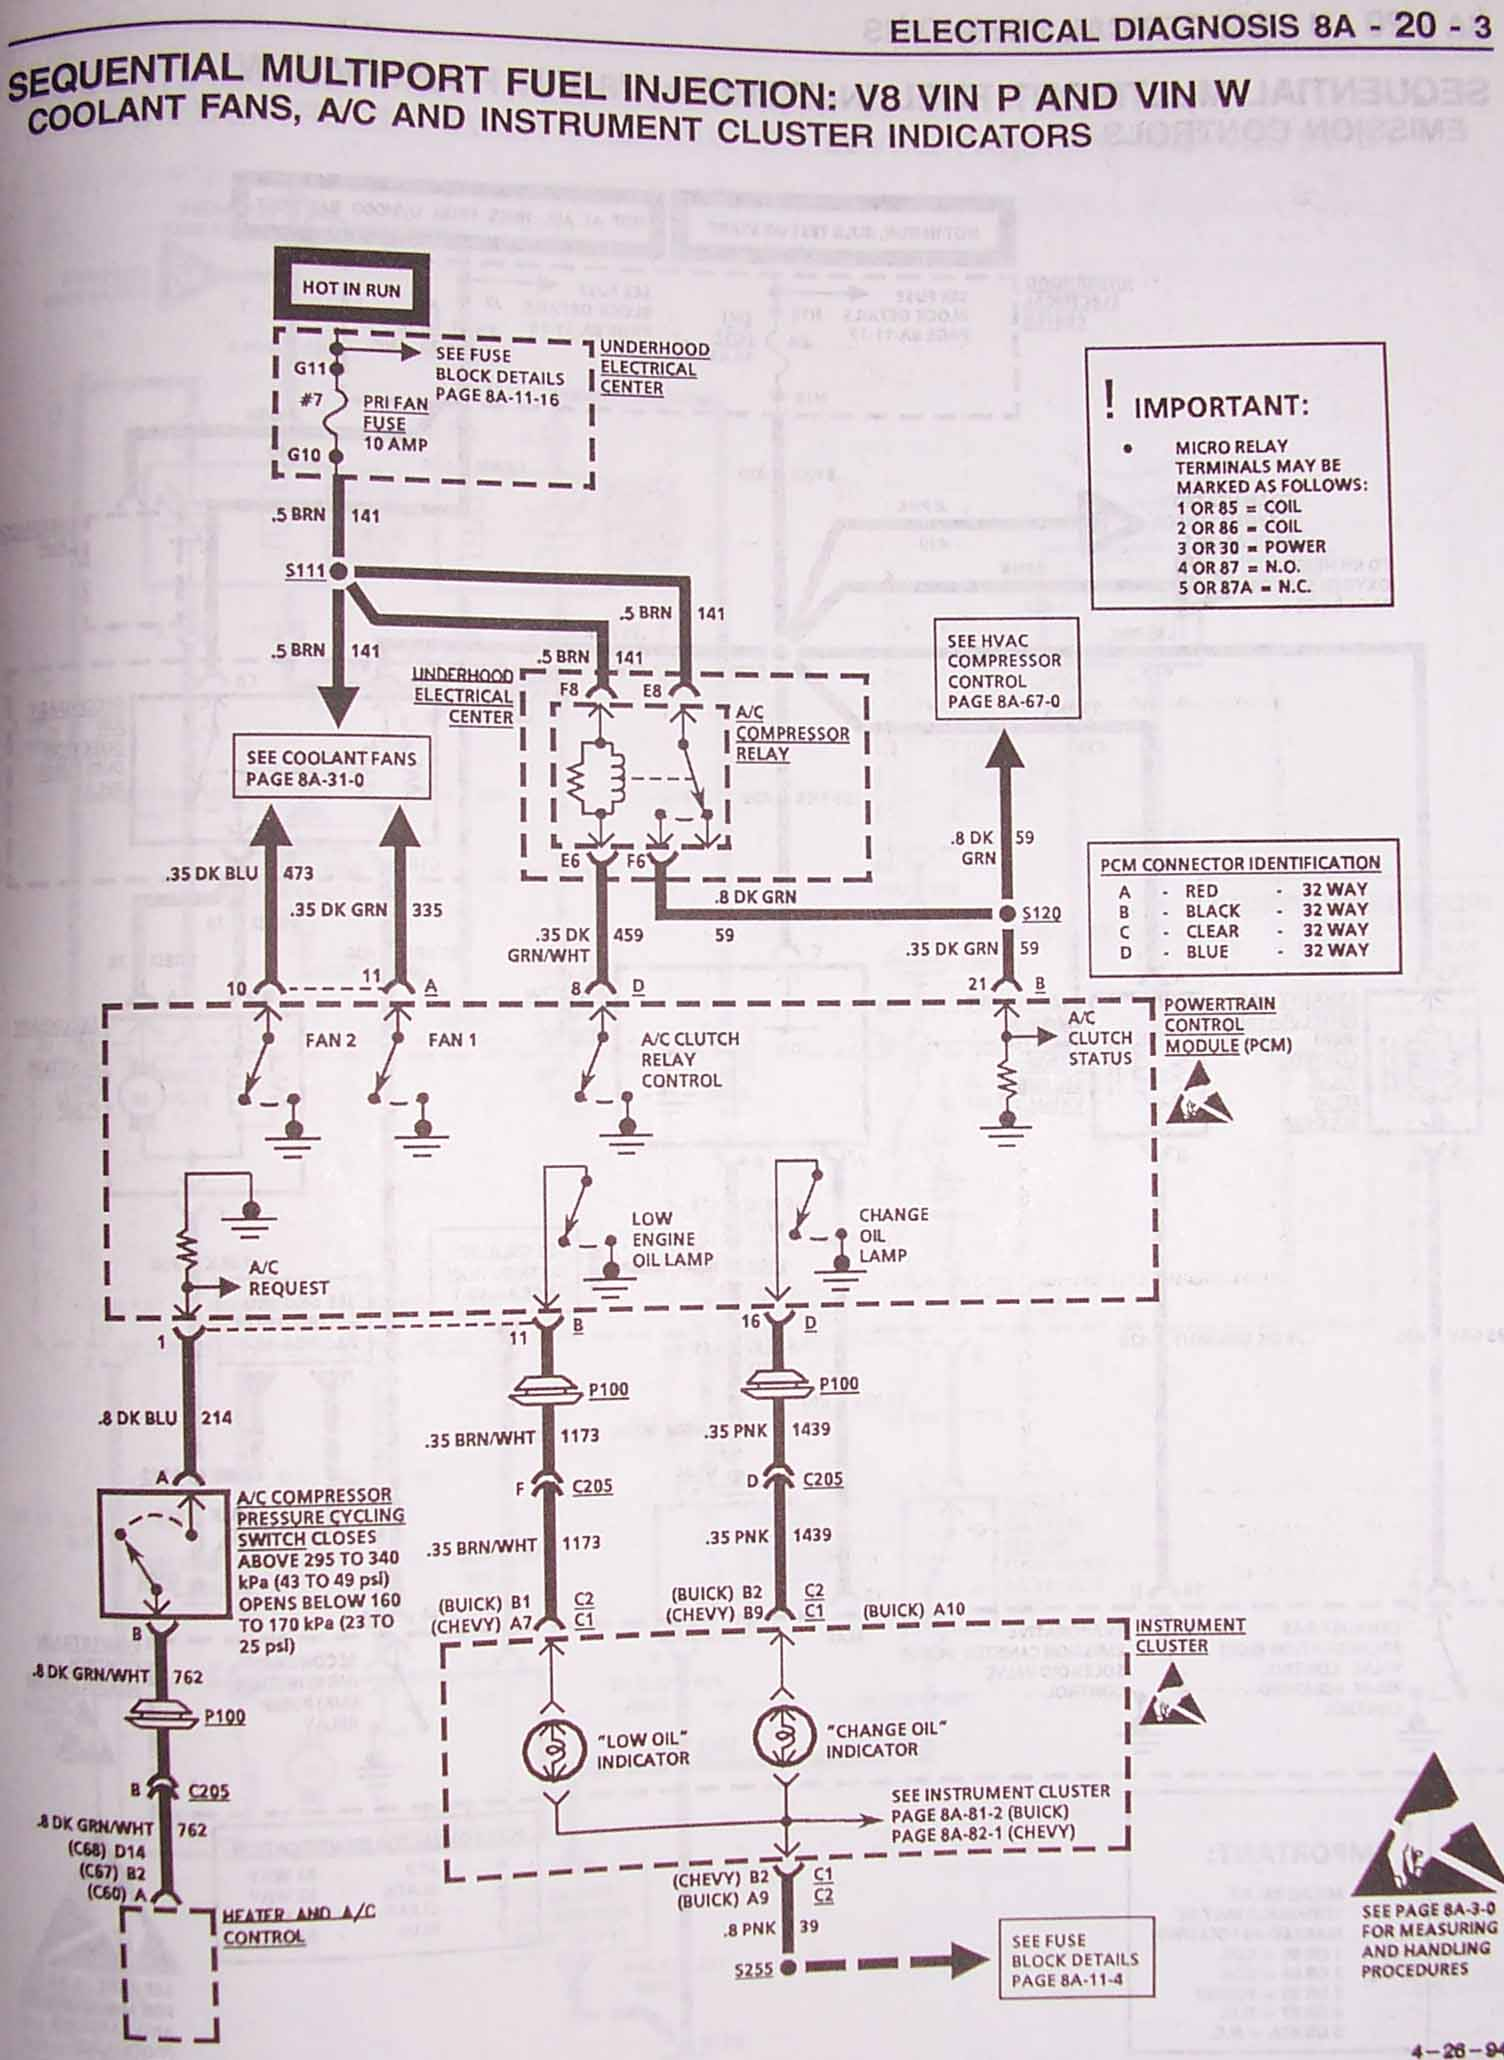 Solenoid Switch Wiring Diagram likewise The 1990 Engine Control Wiring Harness in addition Different Blower Motor Problem 314464 furthermore 96 Lt1 Wire Harness Diagram further 1346696 E99 7 3 Fuel Pressure Issue 3. on on 1 as well electrical wiring diagram 91